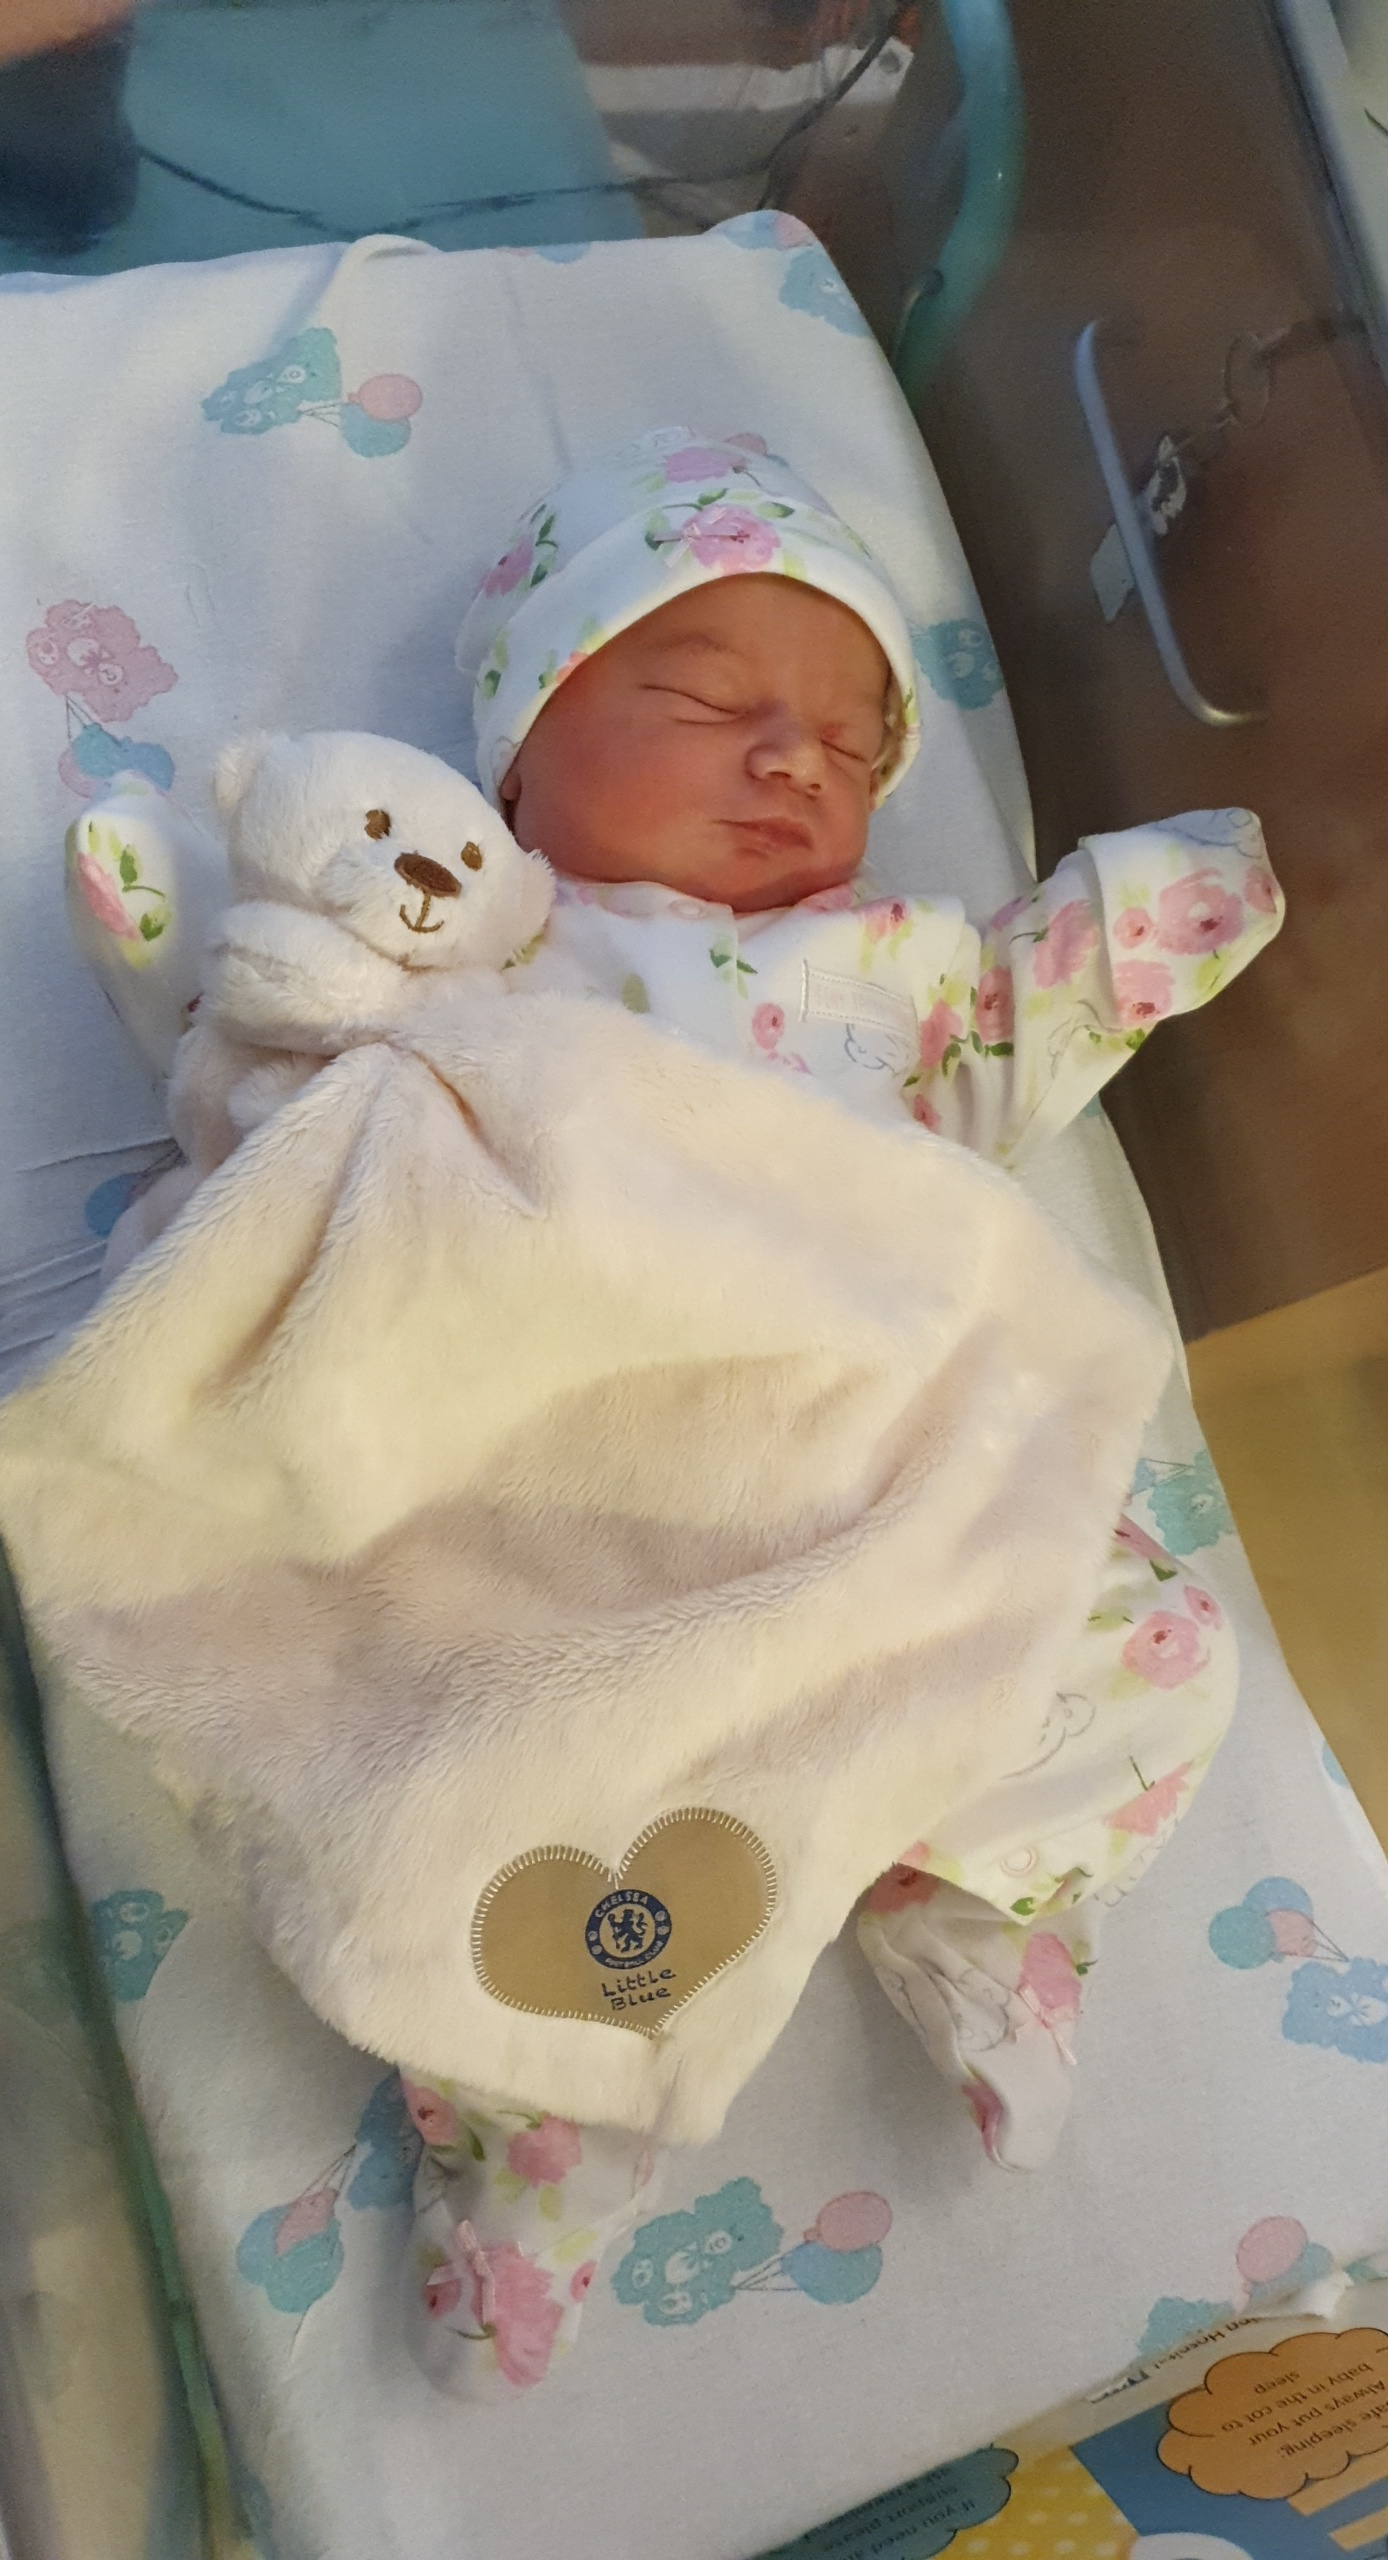 York Press: Elsie-Ray Joan Thornton born  on August 30 weighing 7lb 6oz at York Hospital to Chantel Thornton from Hull Road, York.